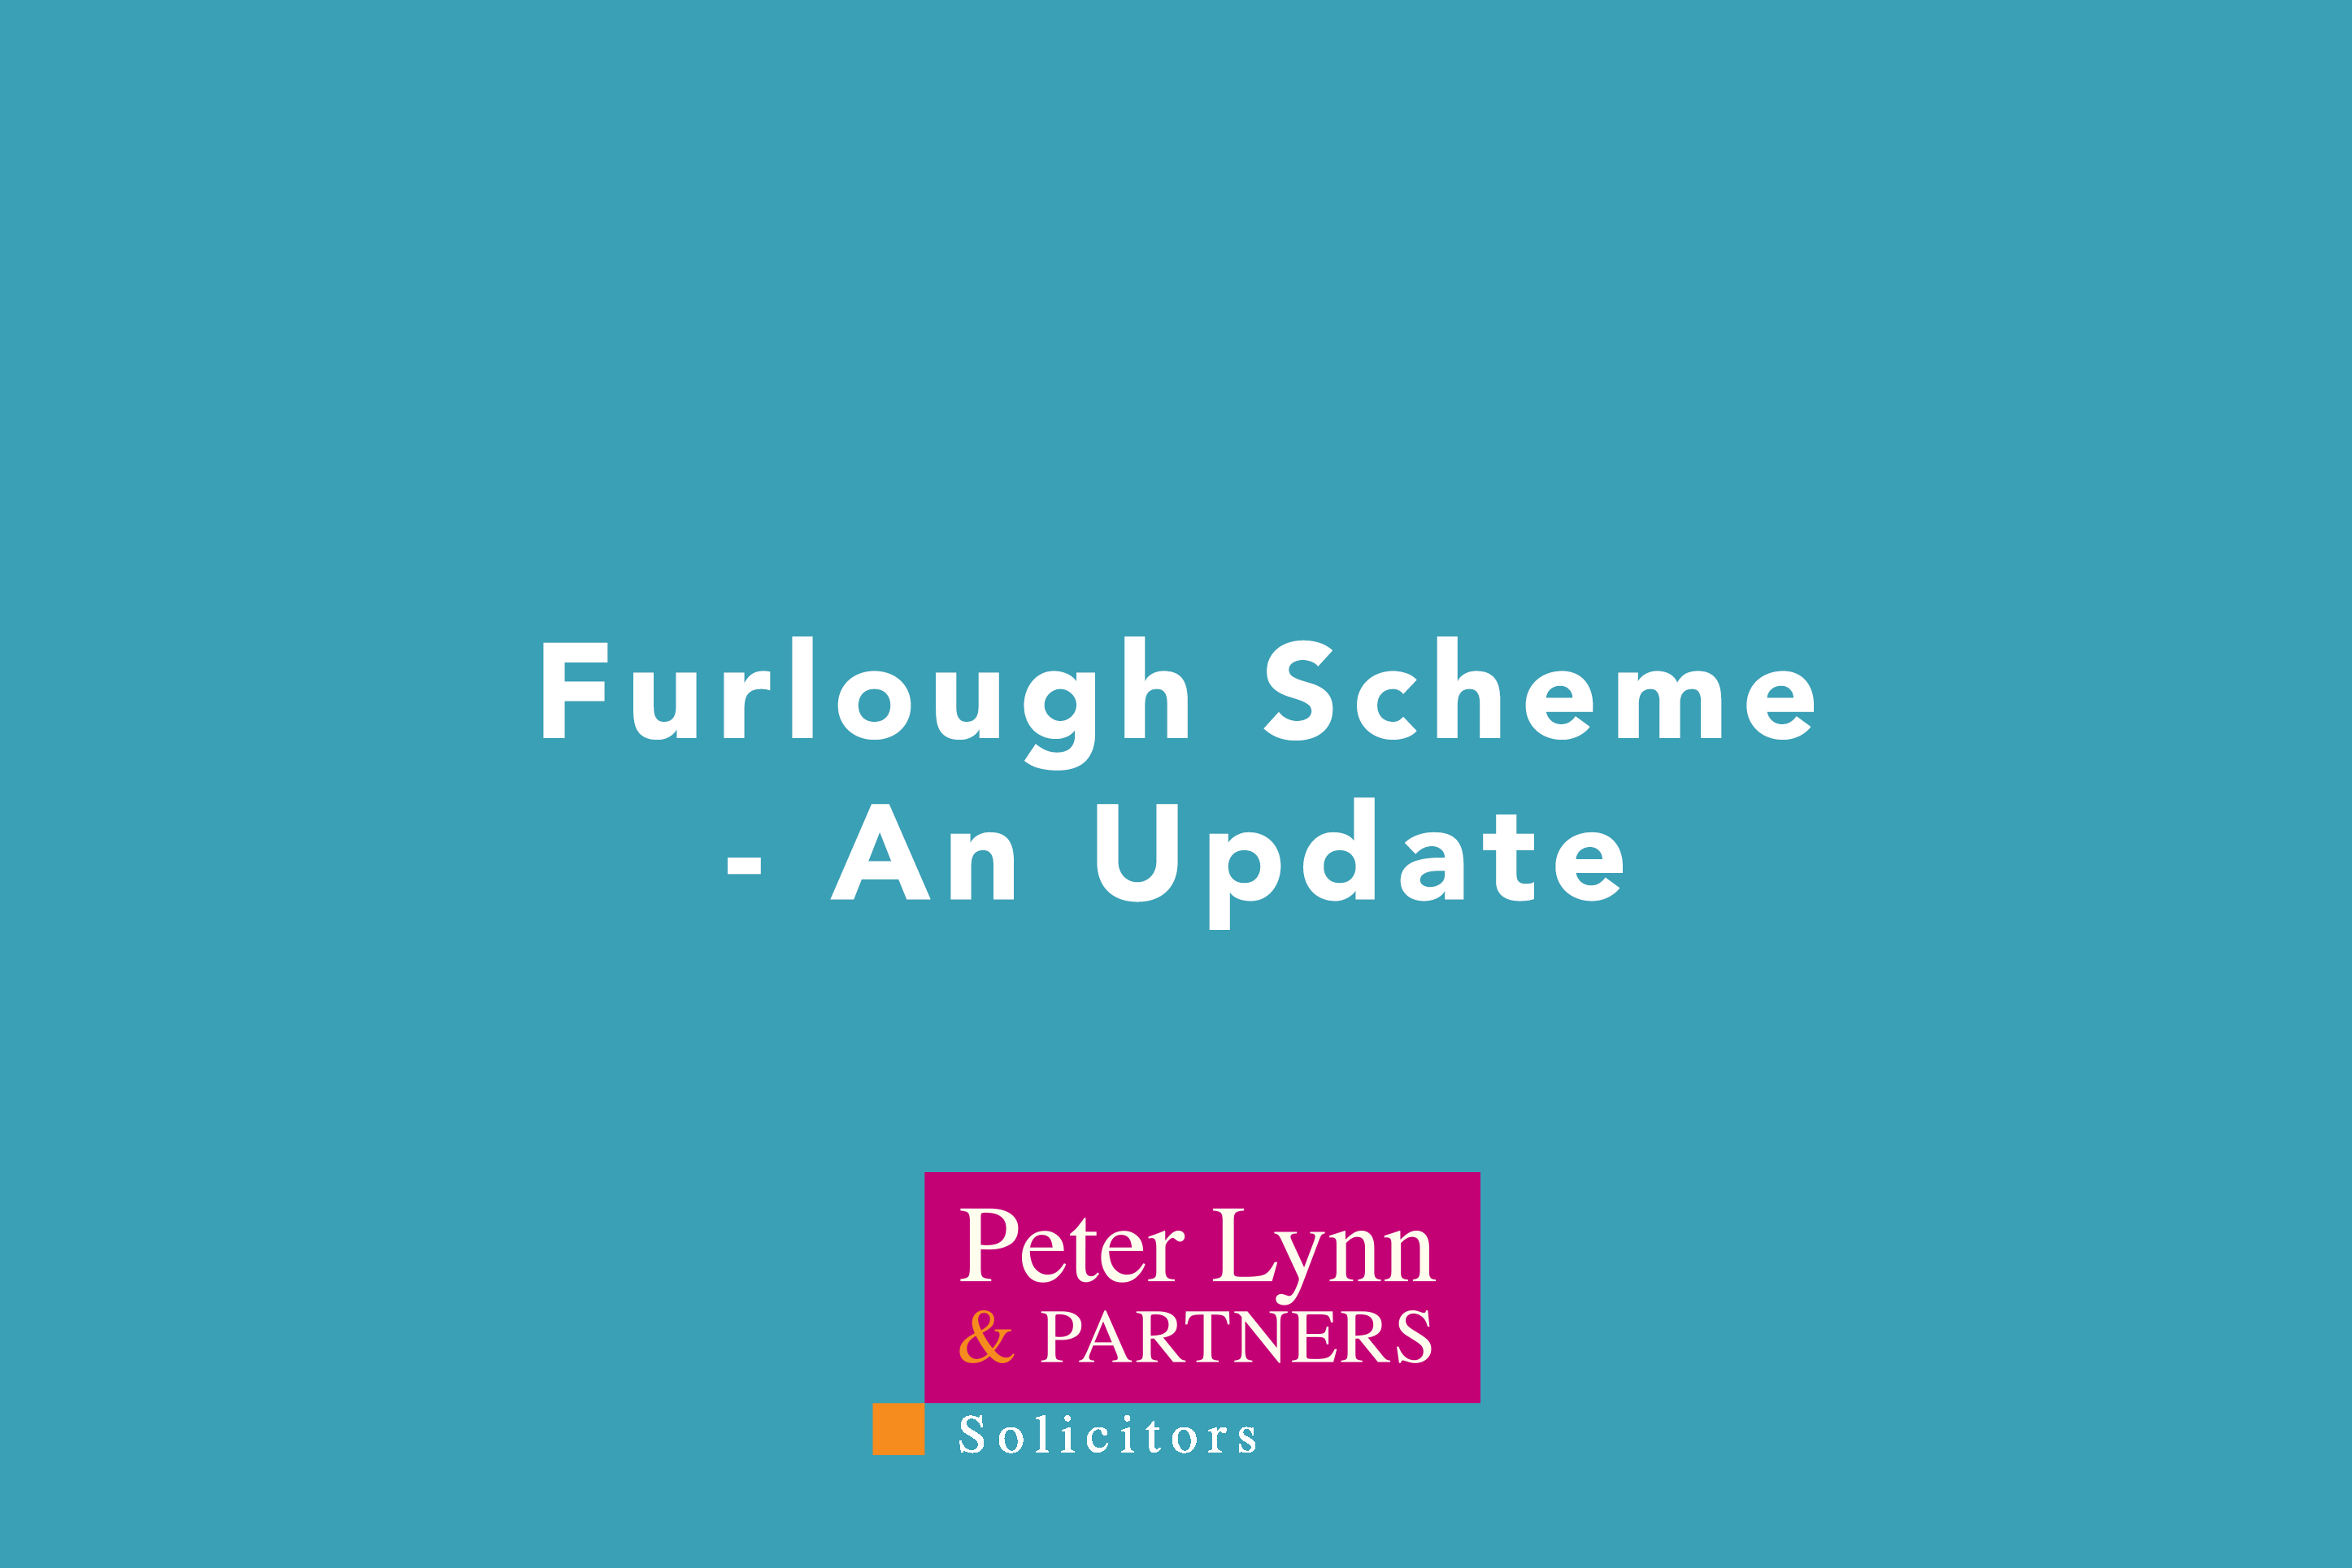 Furlough Scheme - An Update